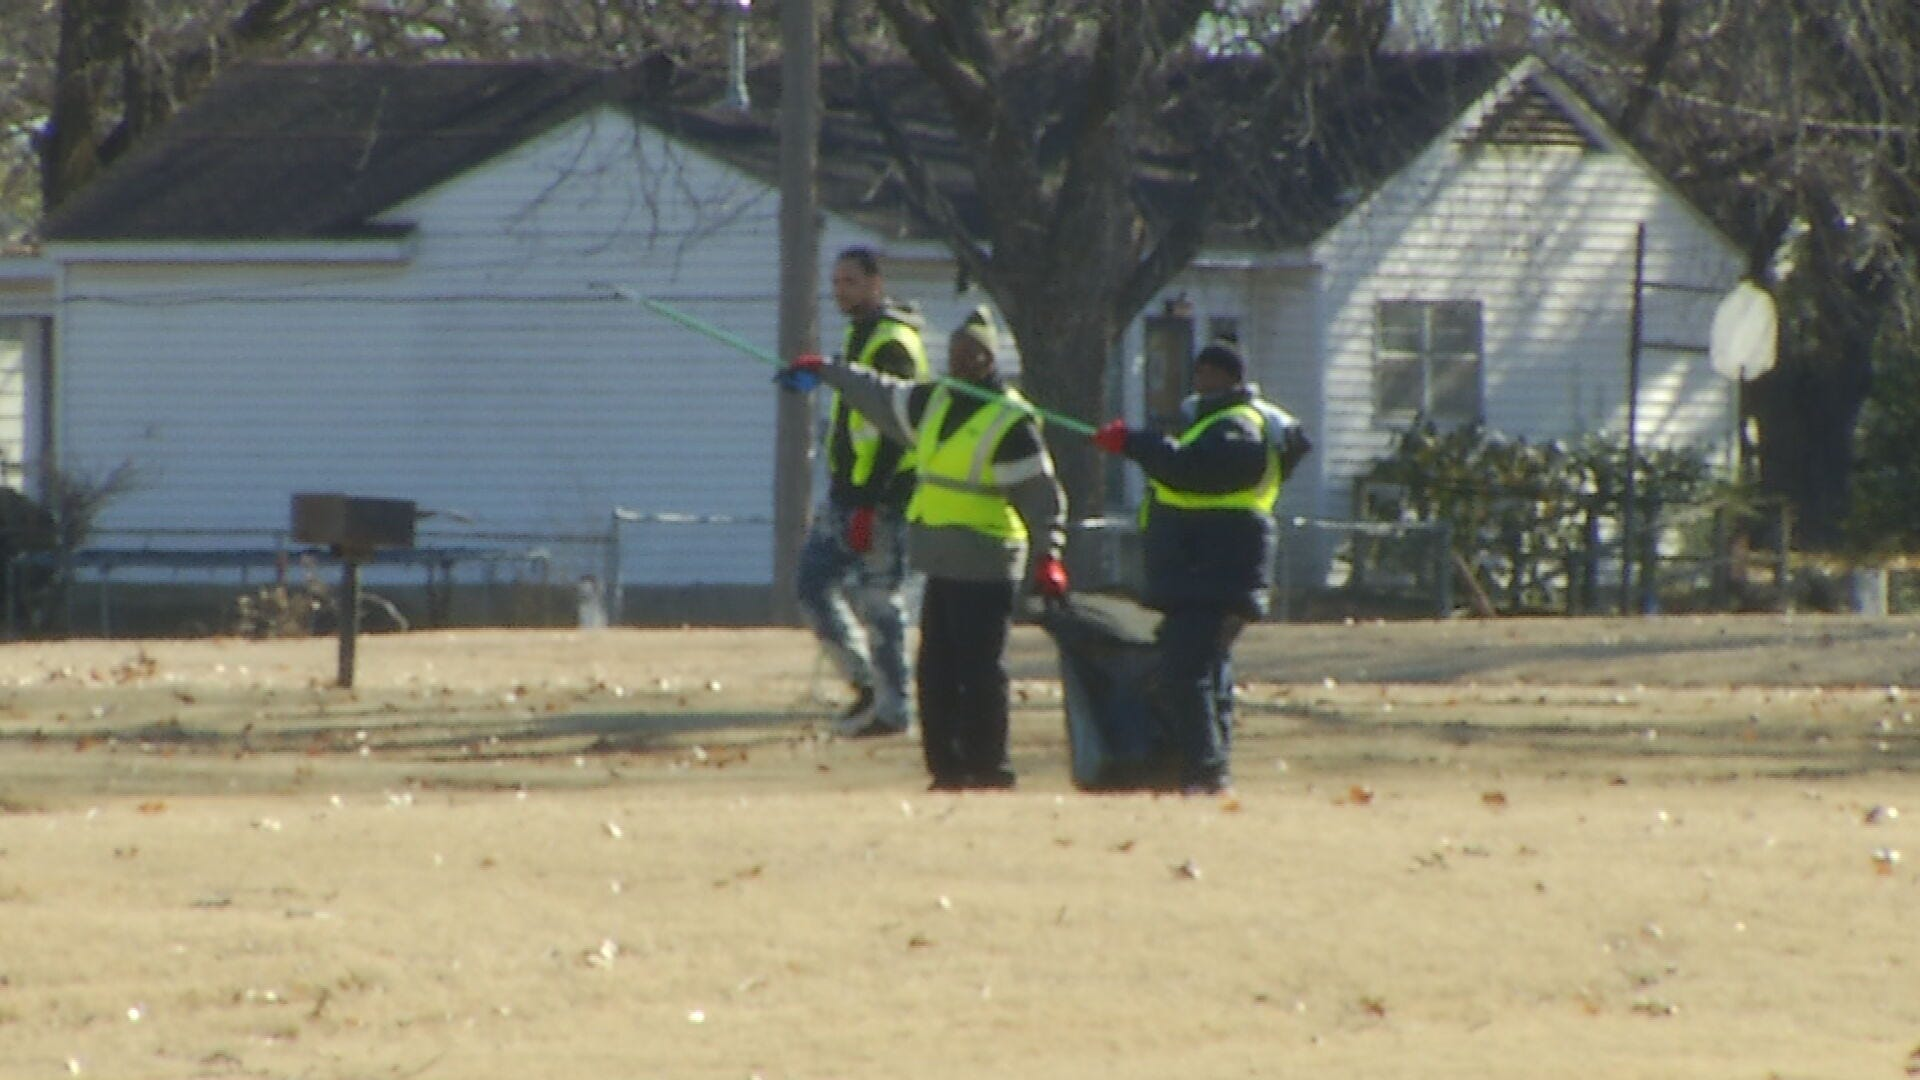 City Councilor Volunteers With 'Better Way' To Clean Tulsa Park